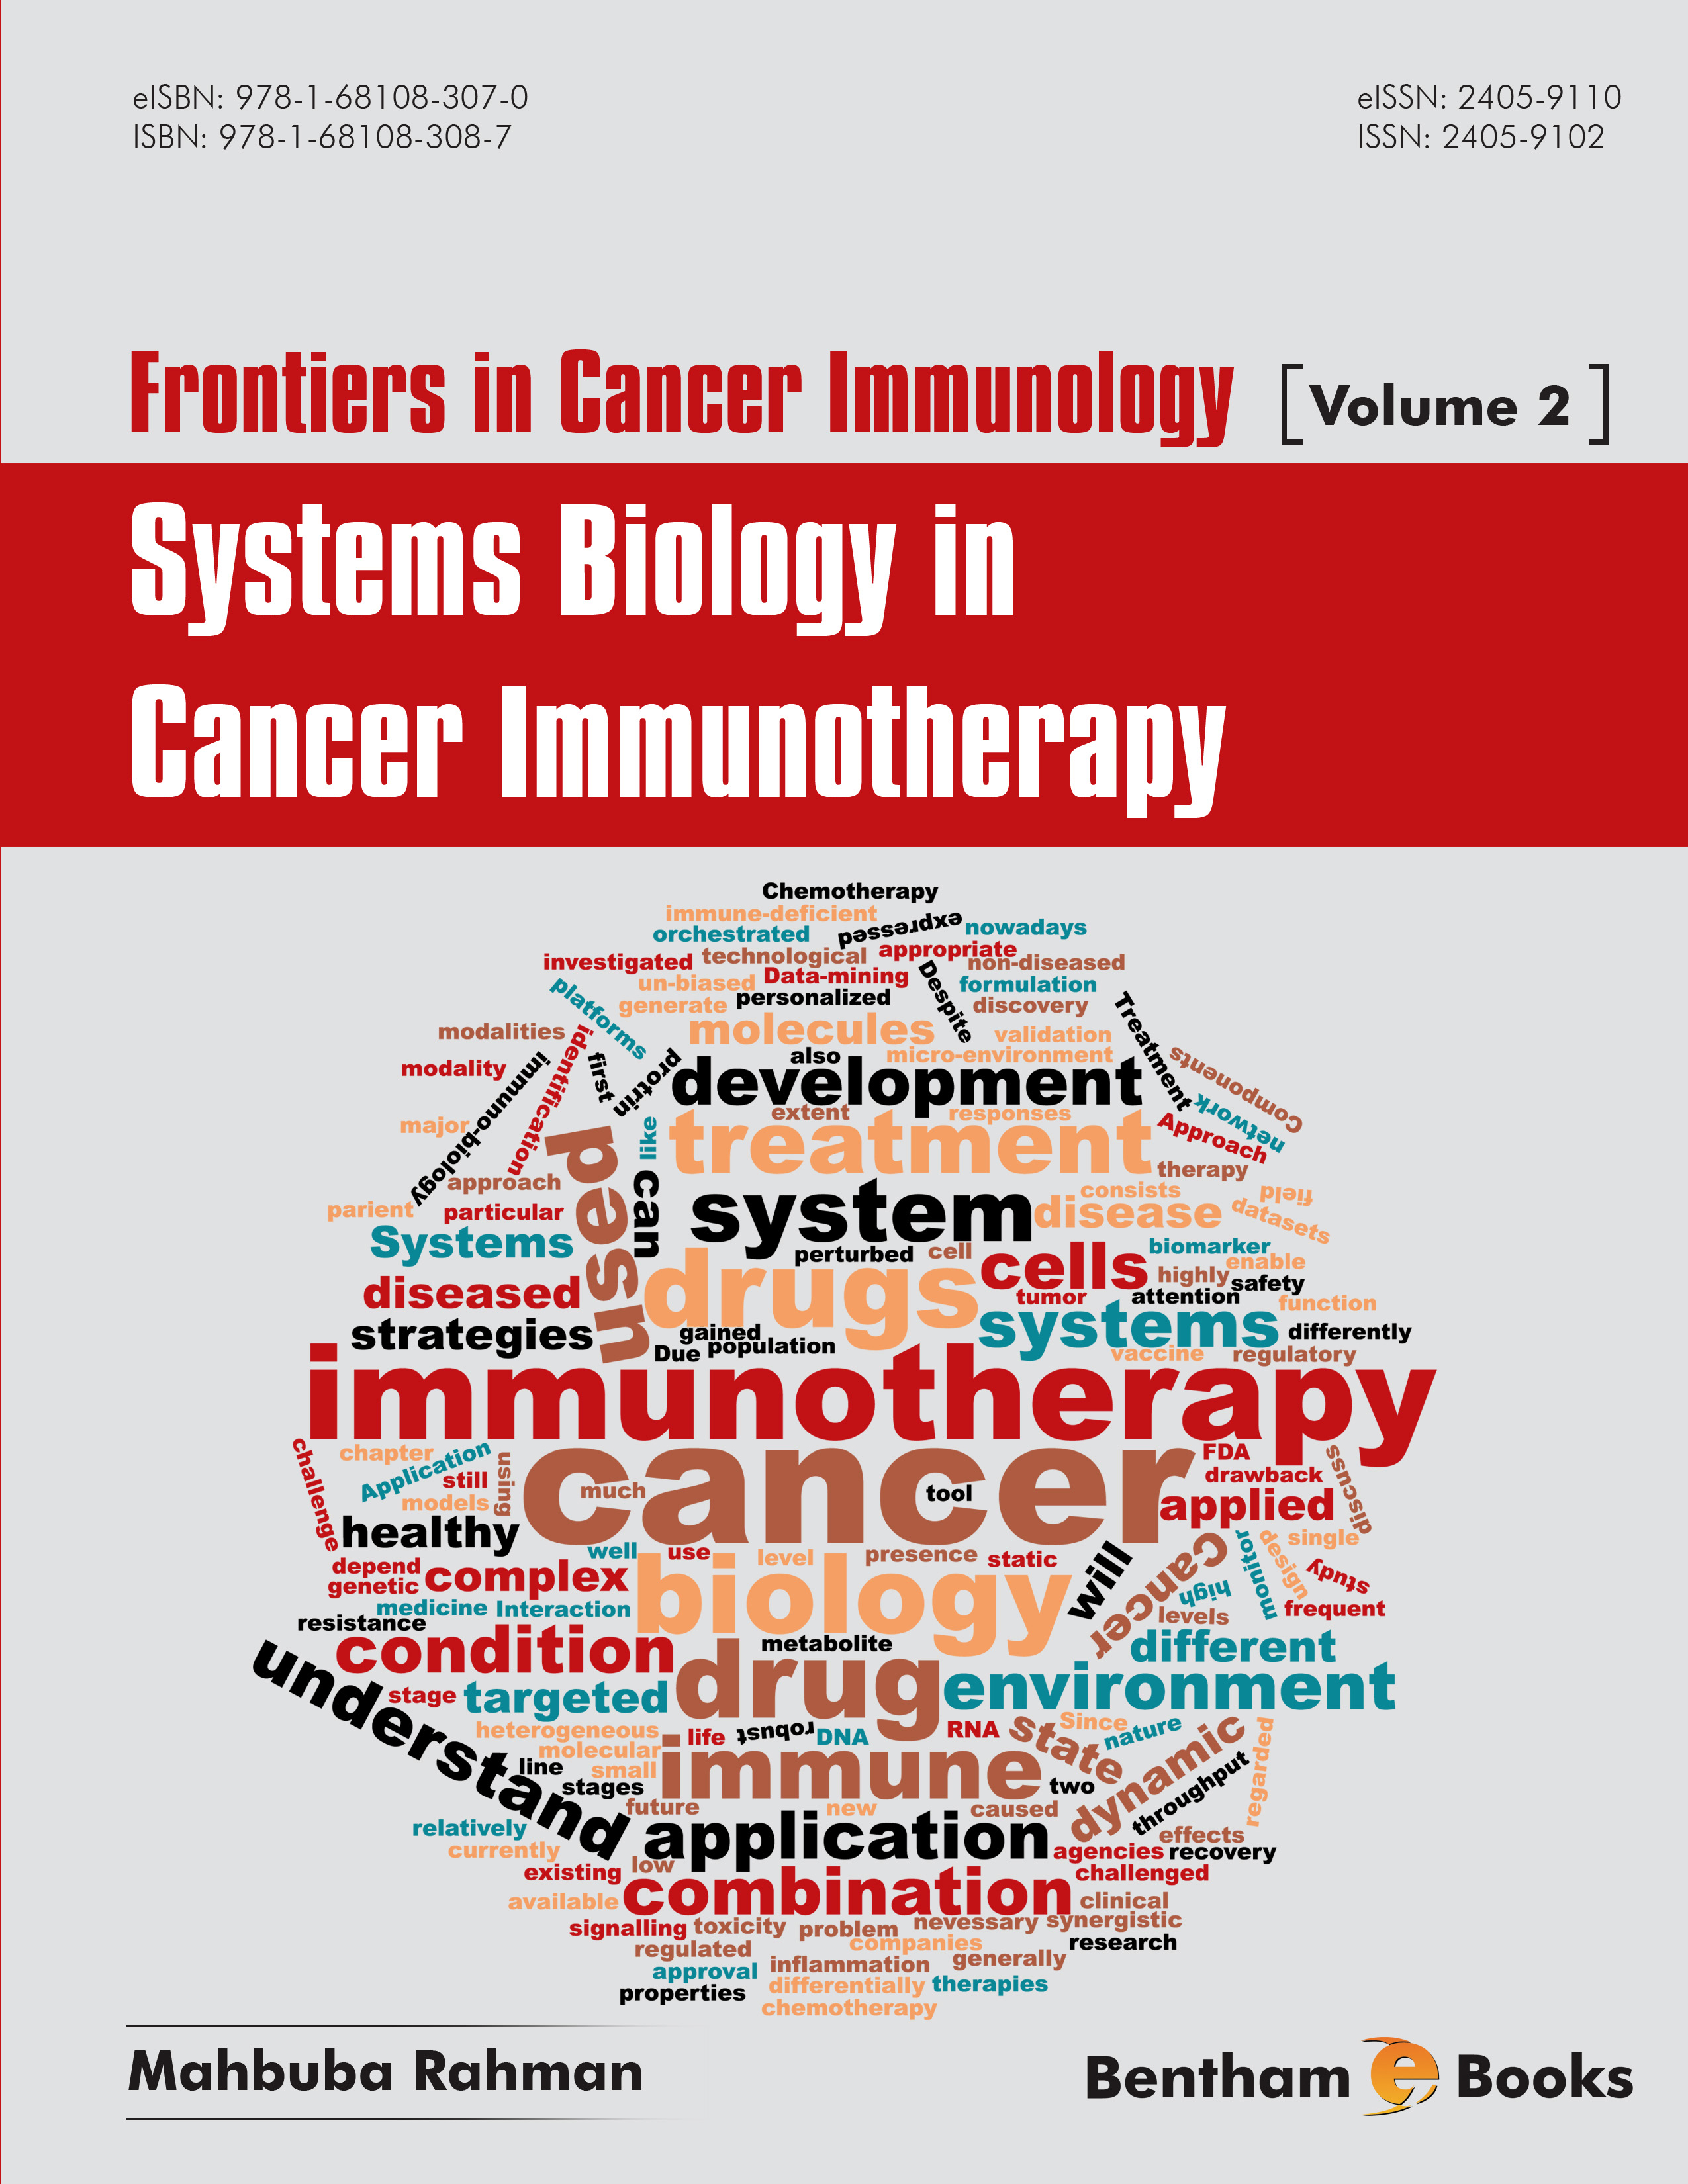 Systems Biology in Cancer Immunotherapy